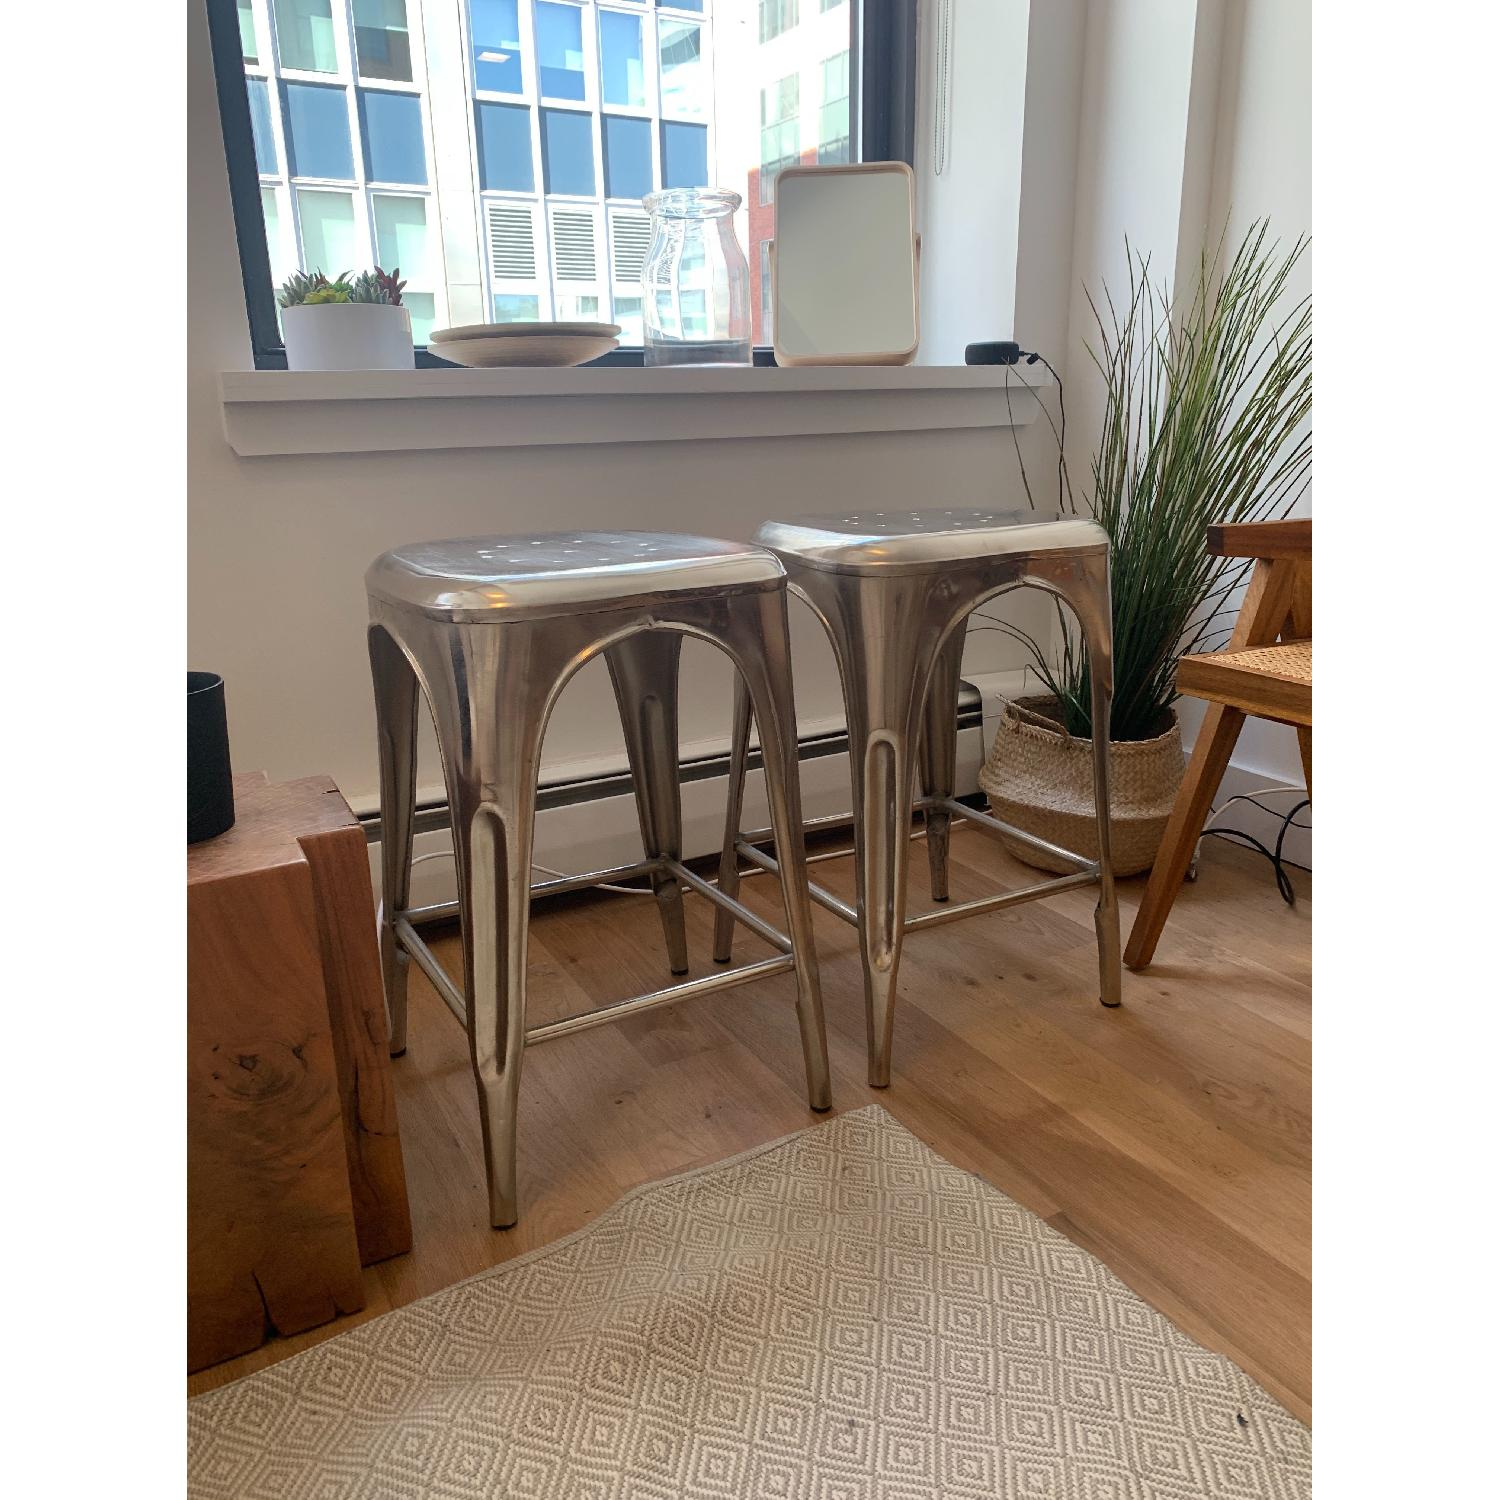 Restoration Hardware Remy Backless Counter Stools-4